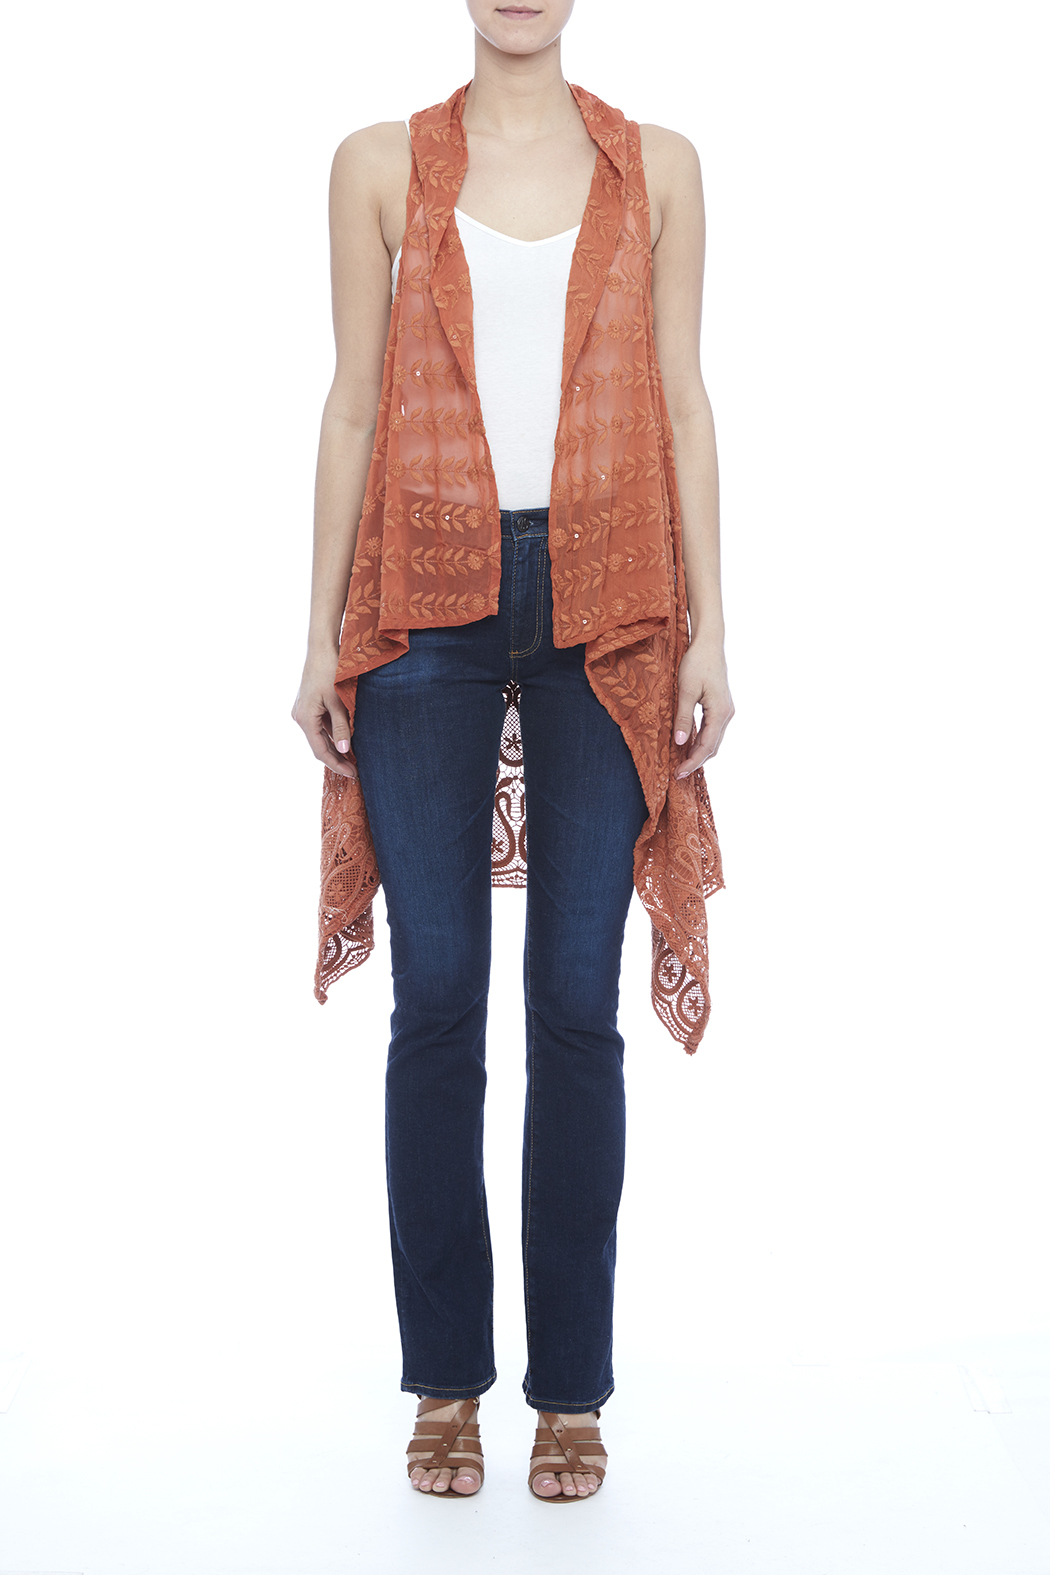 Raj Lotus Rust Lace Embroidered Vest - Side Cropped Image